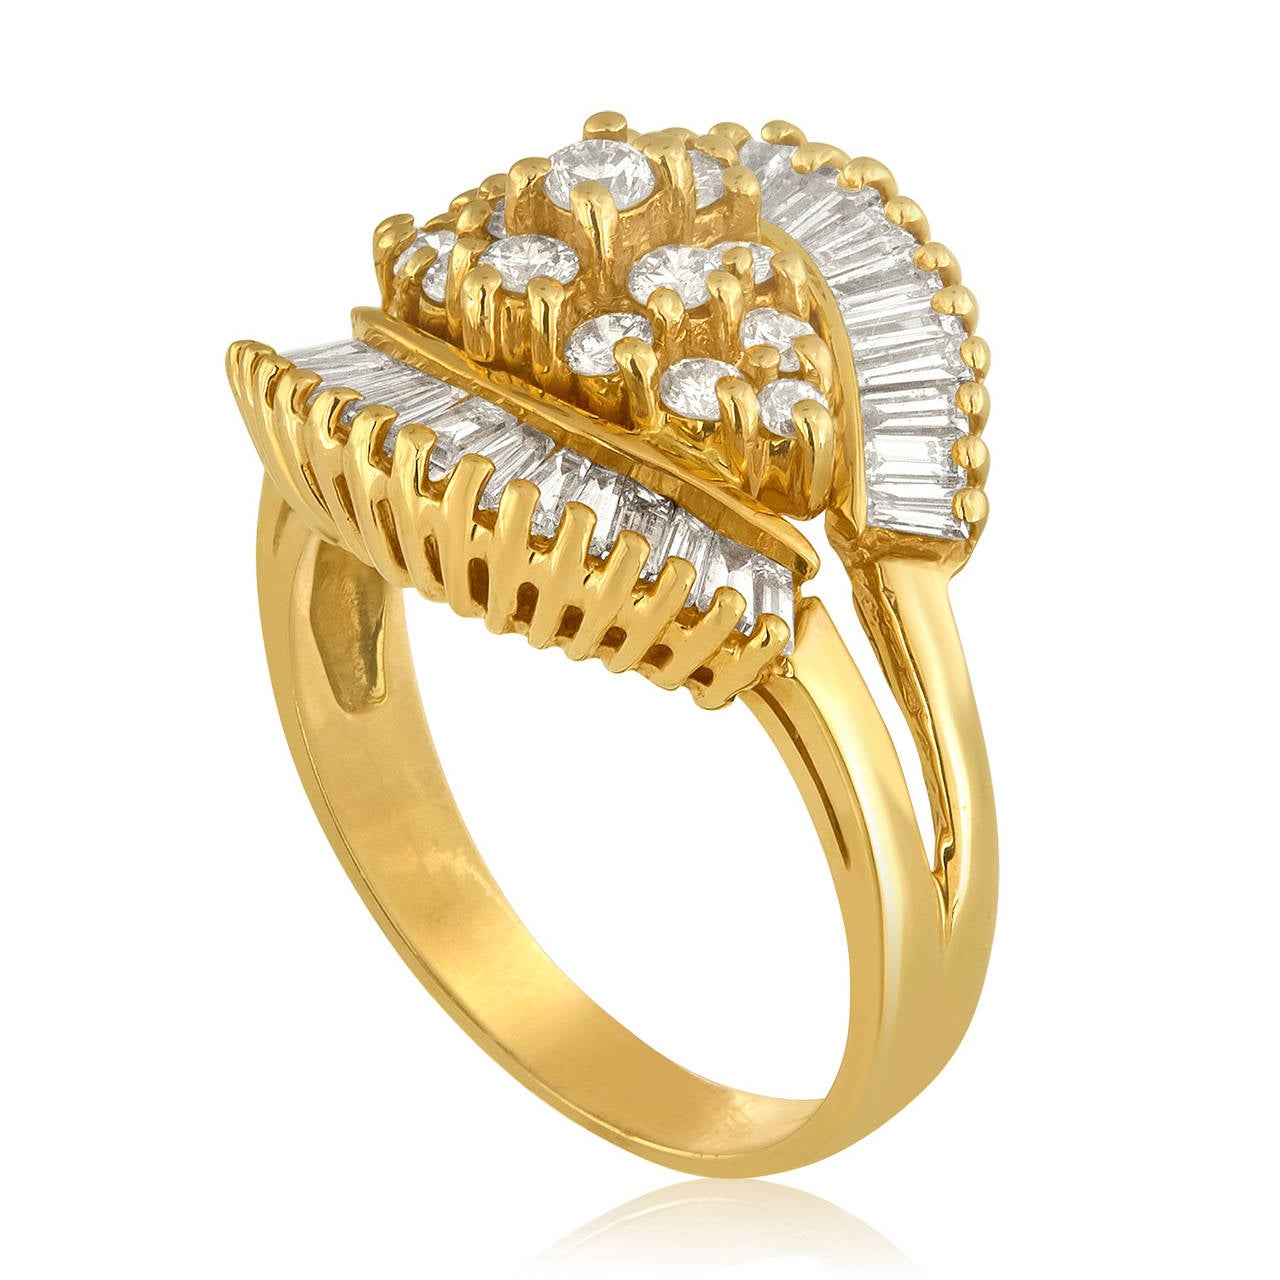 Beautiful 1990's Ballerina Ring. The ring is 14K Yellow Gold 1.50ct in Diamonds H VS The ring weighs 6.0 grams The ring is a size 7, sizable.